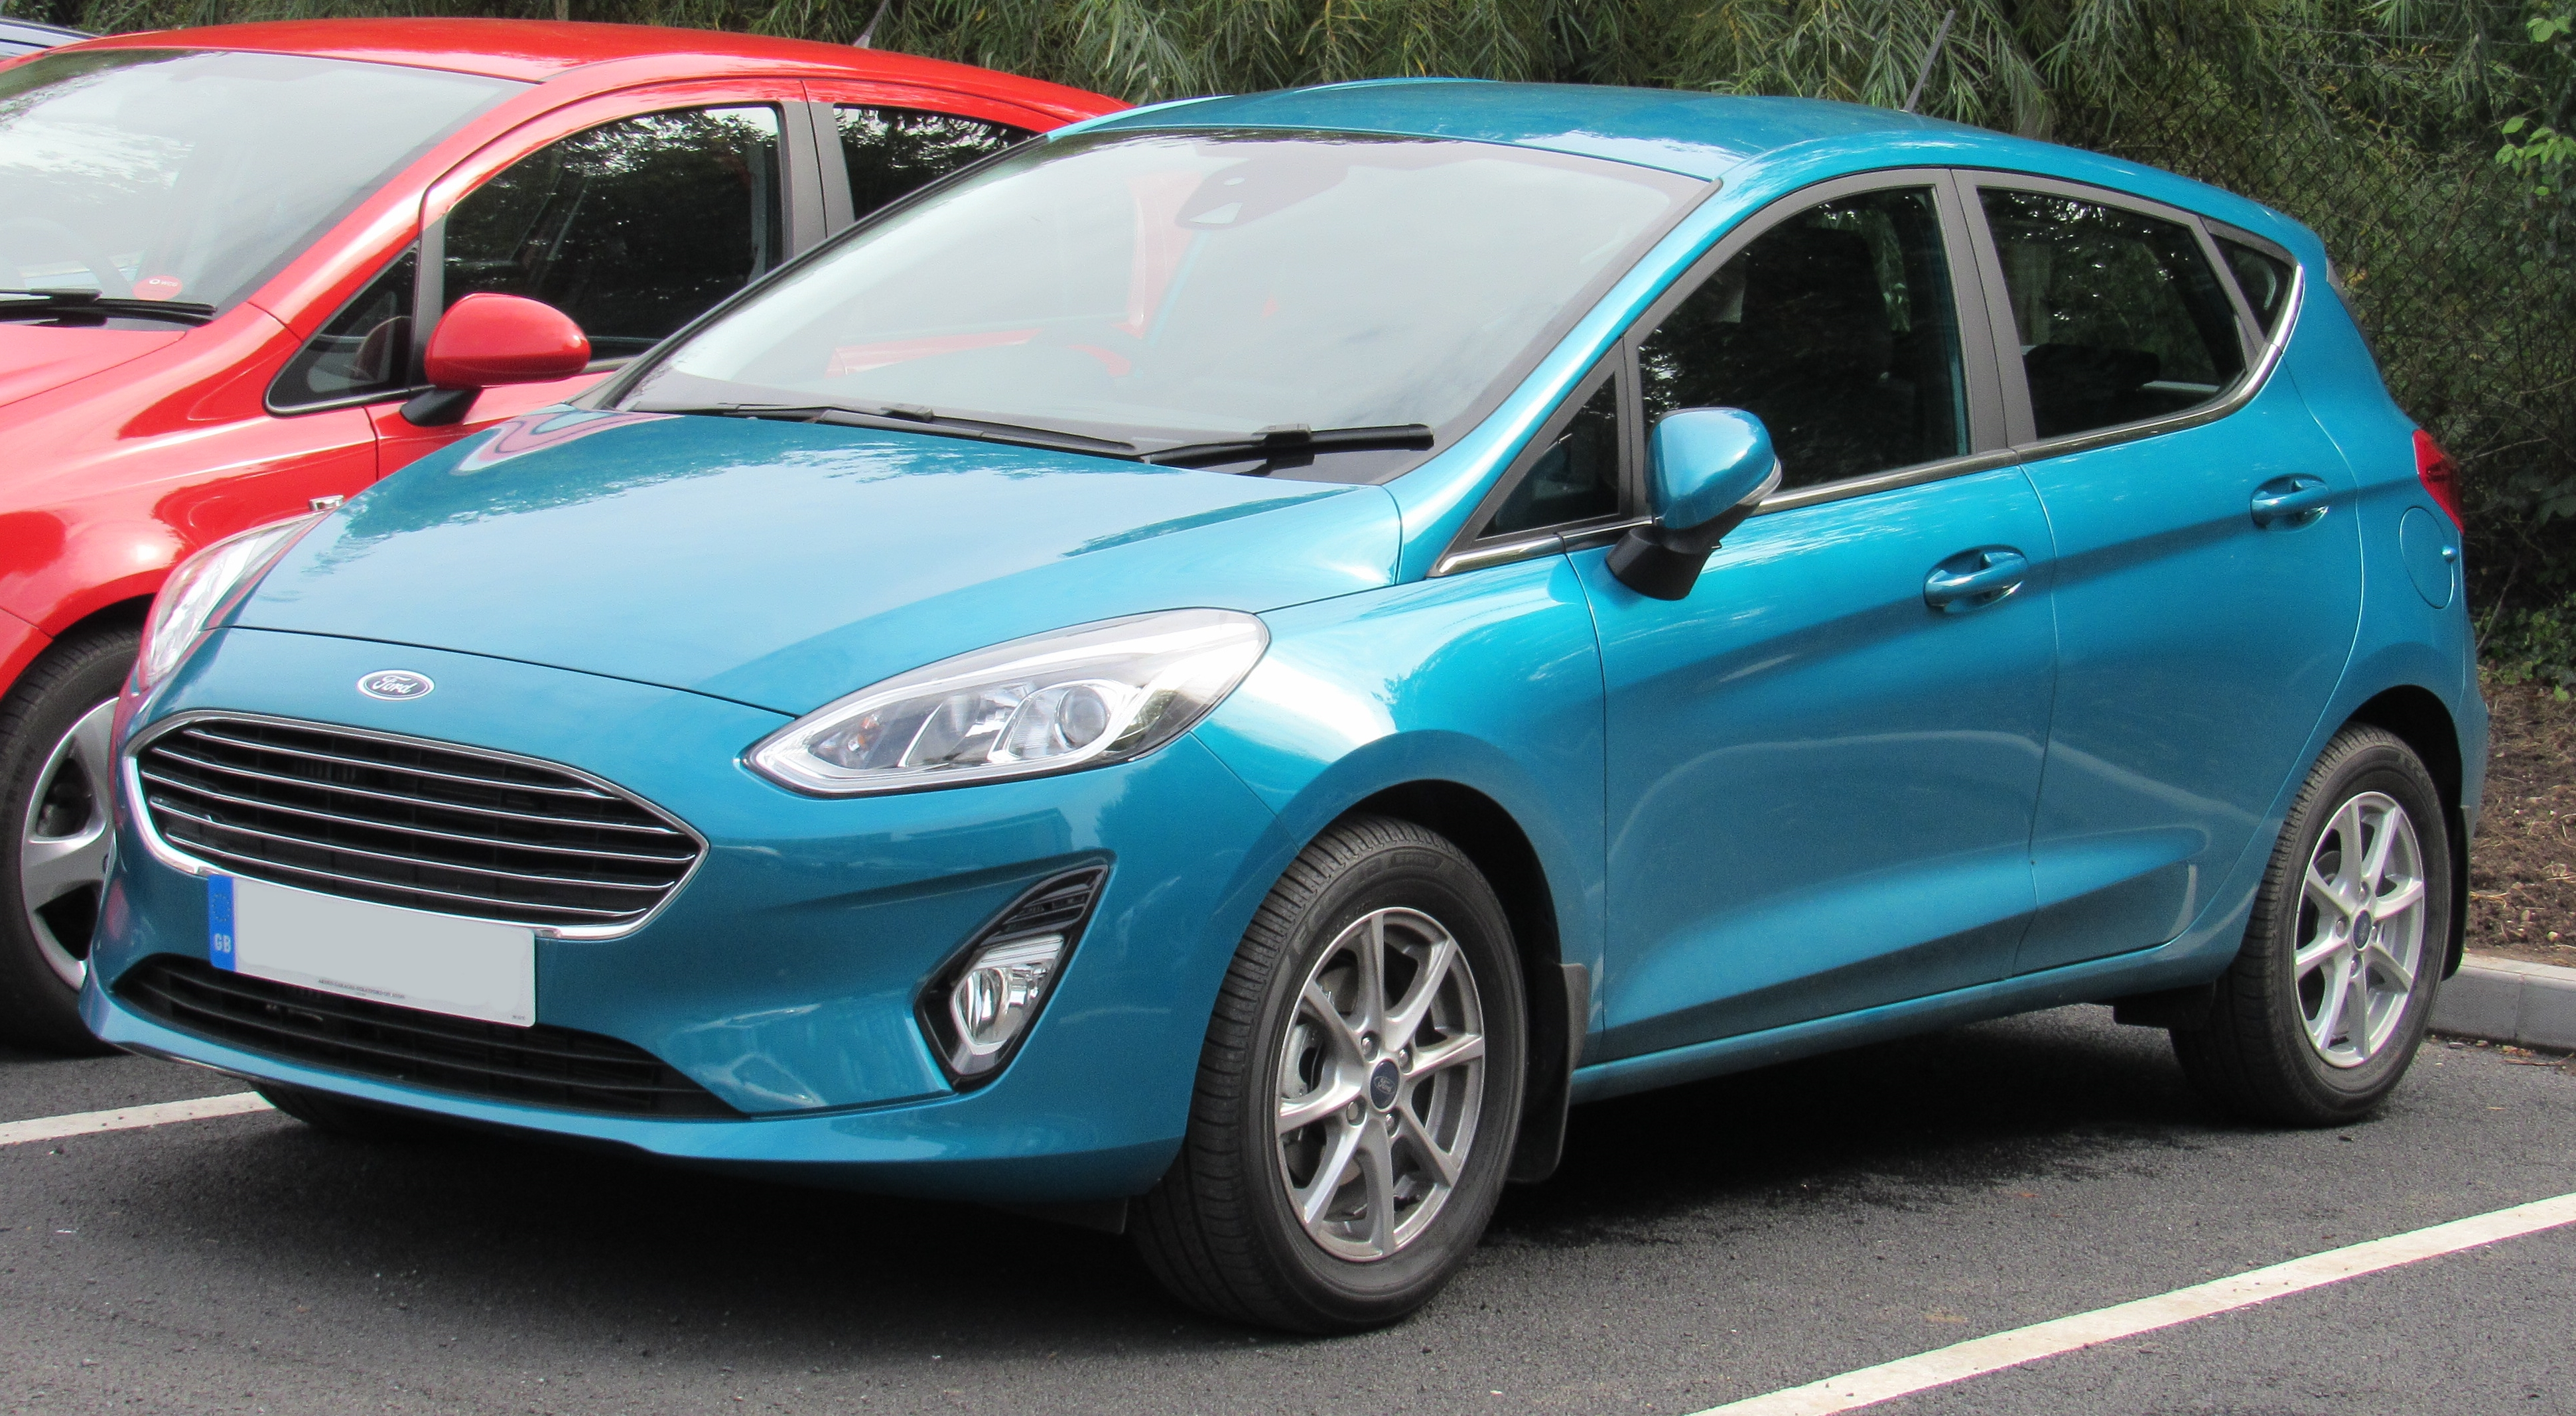 Ford Fiesta - Wikiwand